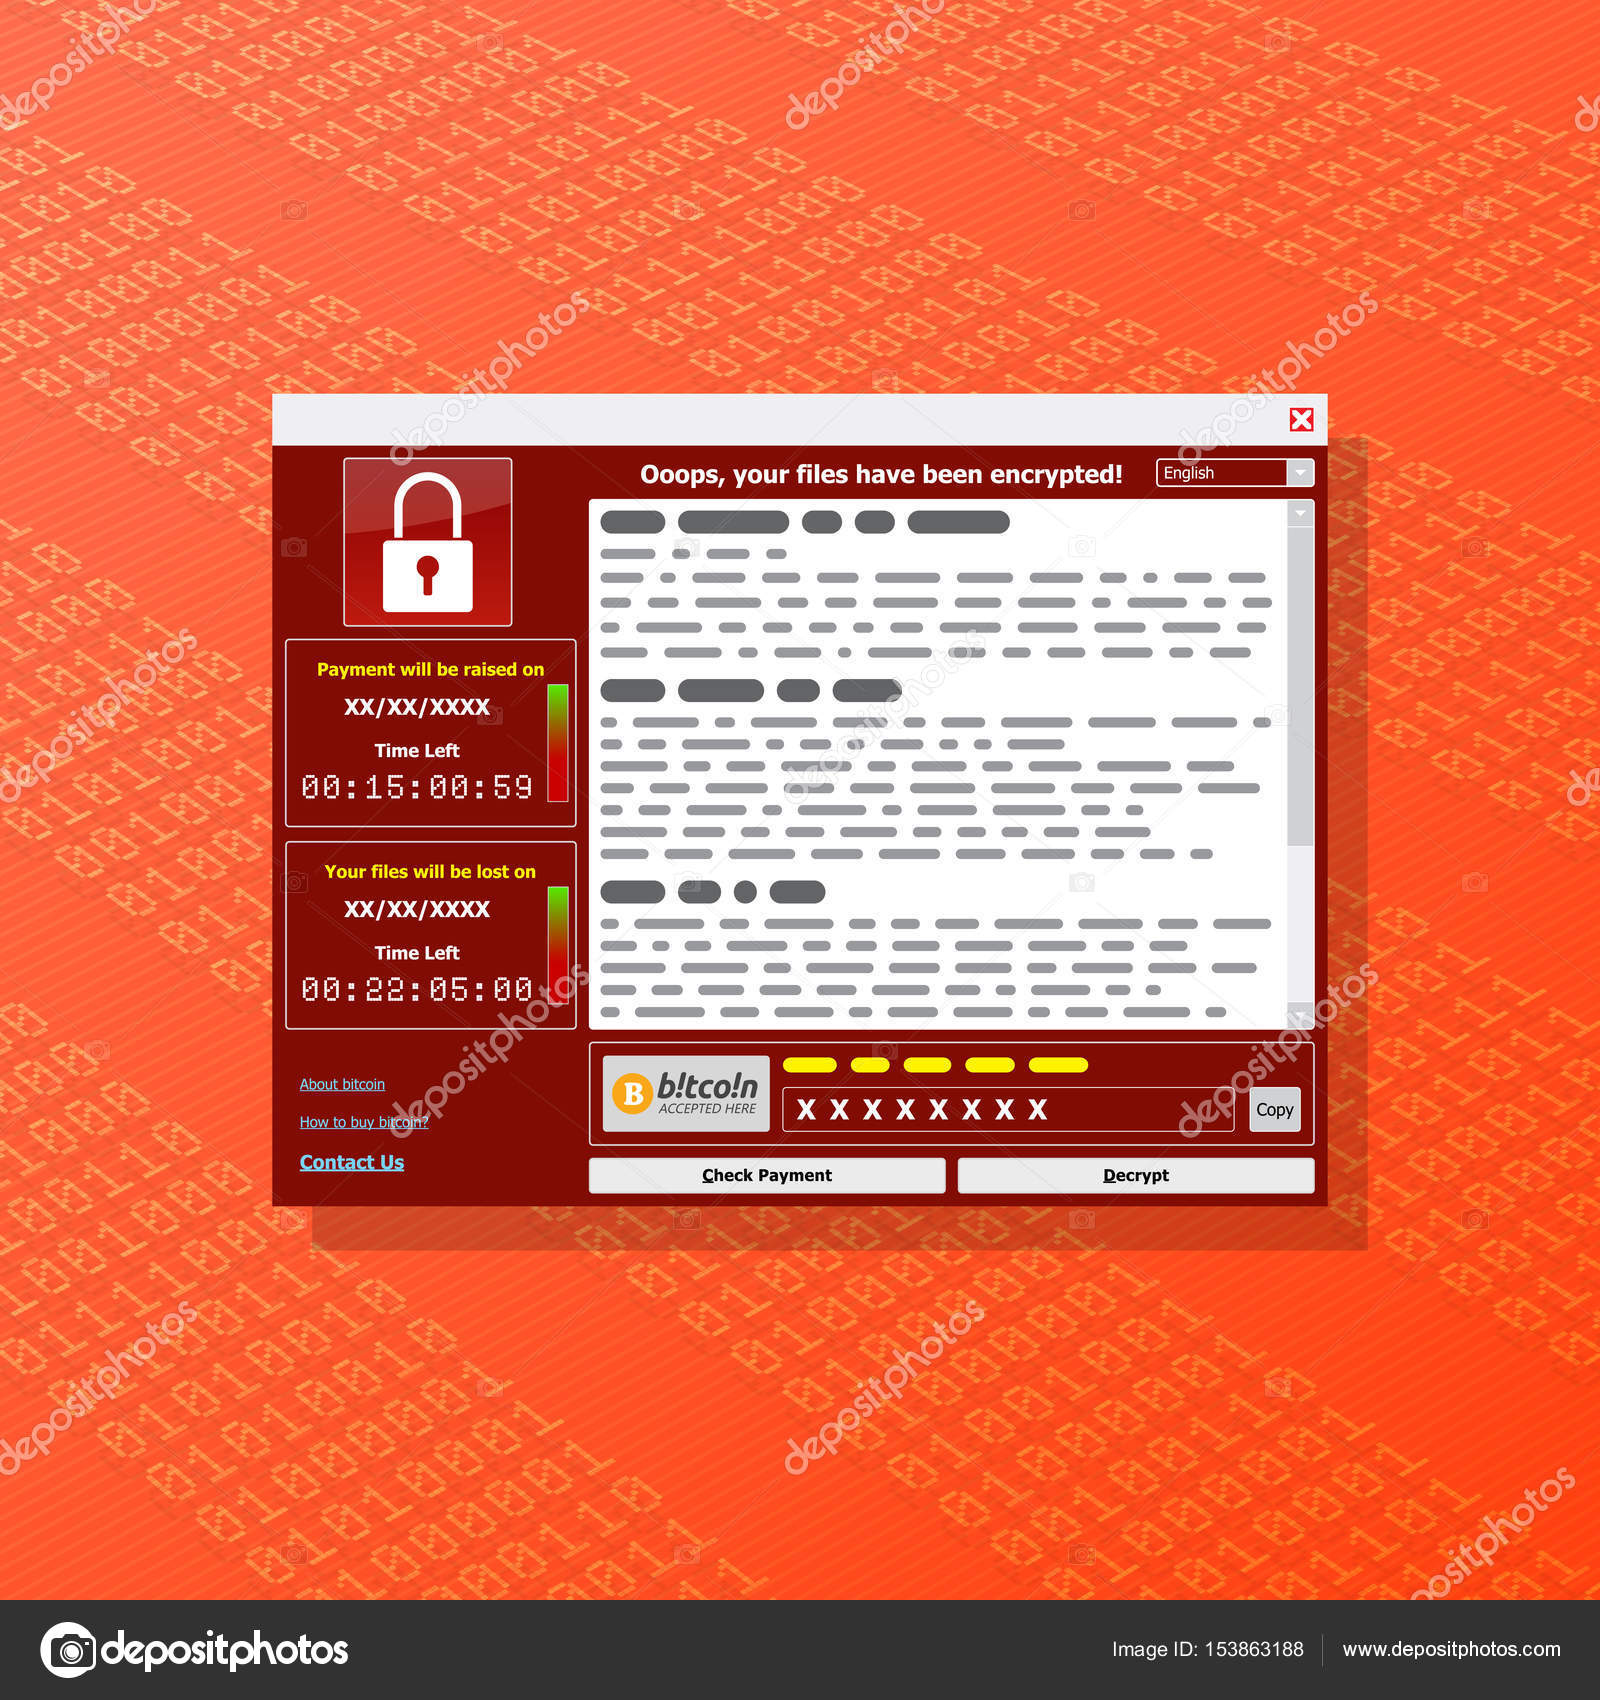 Virus Malware Ransomware wannacry encrypted your files and requi